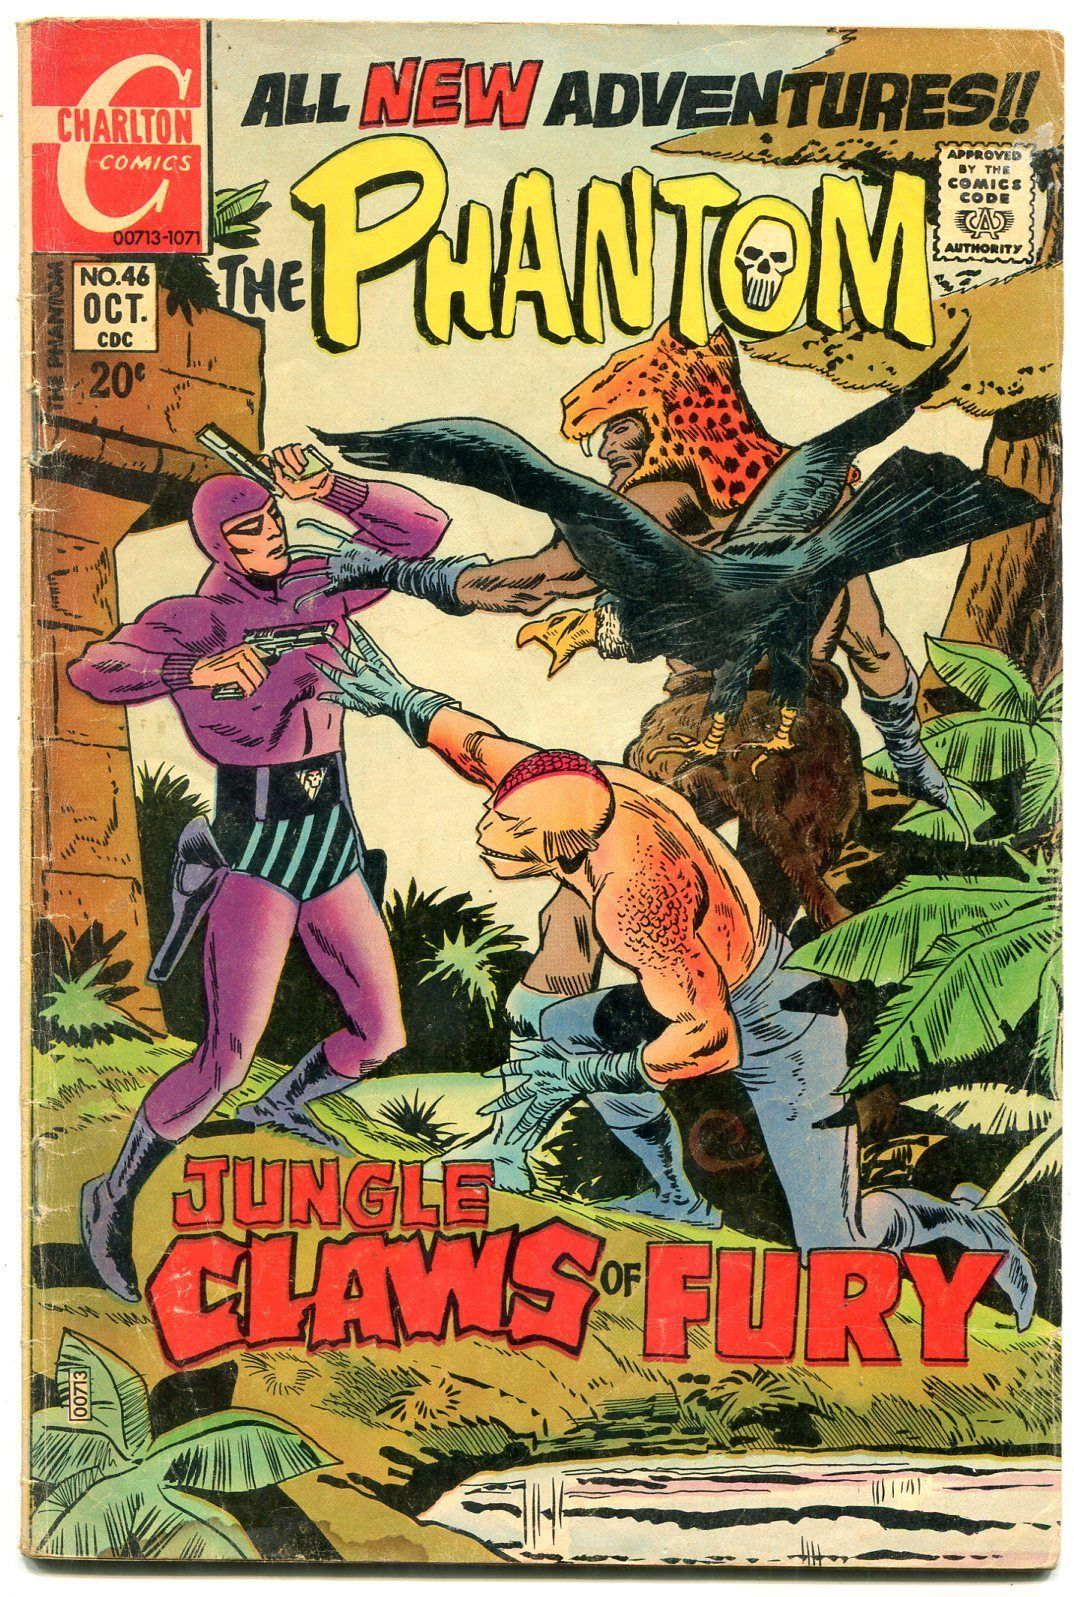 Primary image for THE PHANTOM #46 1971-CHARLTON COMICS-WILD COVER-SF G